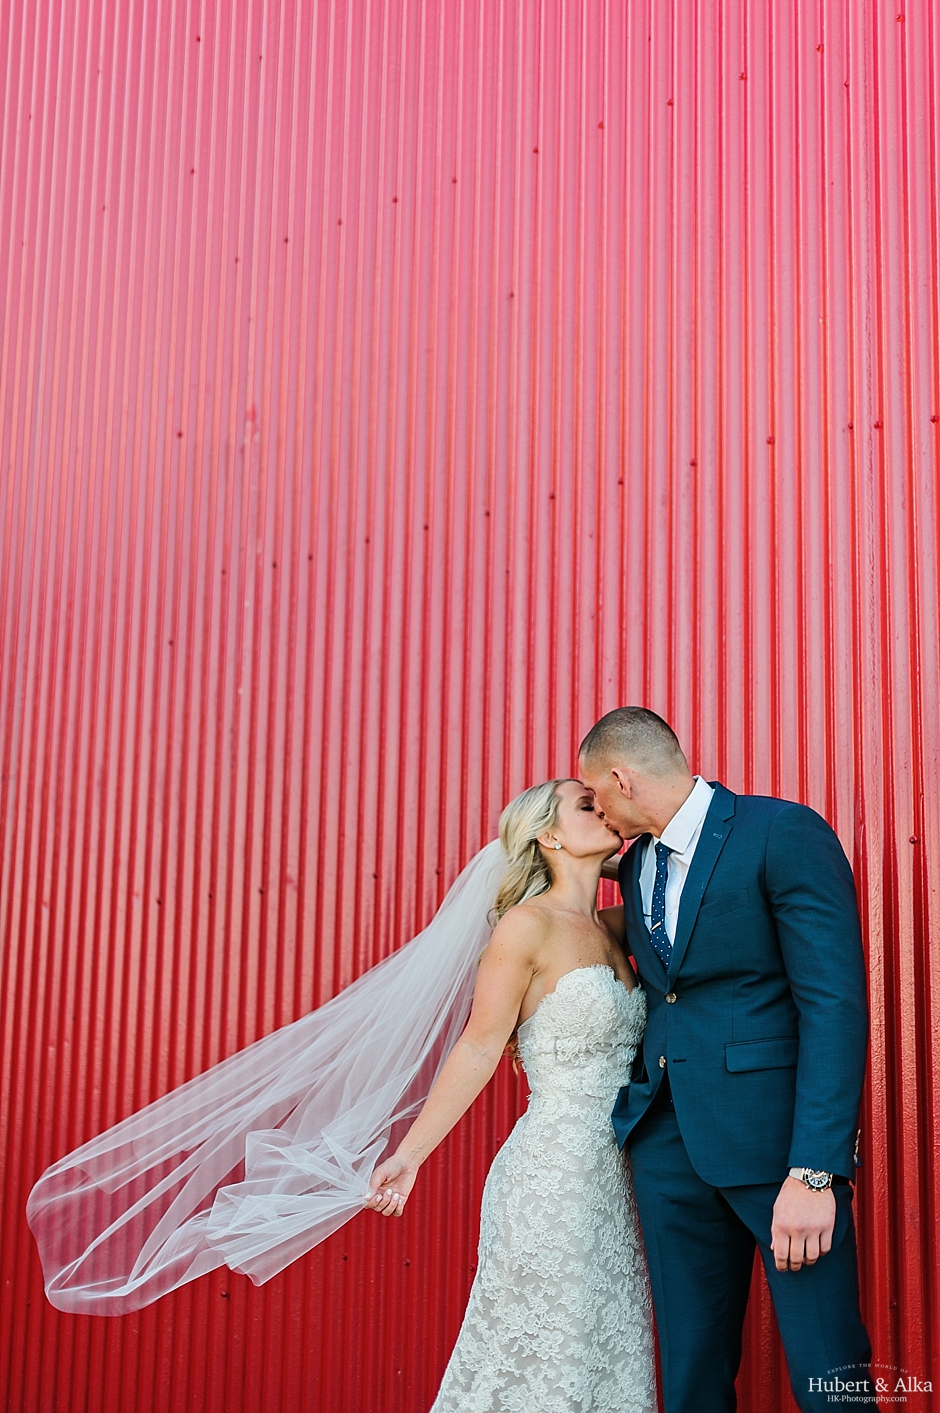 The Lighthouse NYC at Chelsea Piers | Abigail Kirsch | NYC Wedding Photographer | Hubert and Alka Weddings